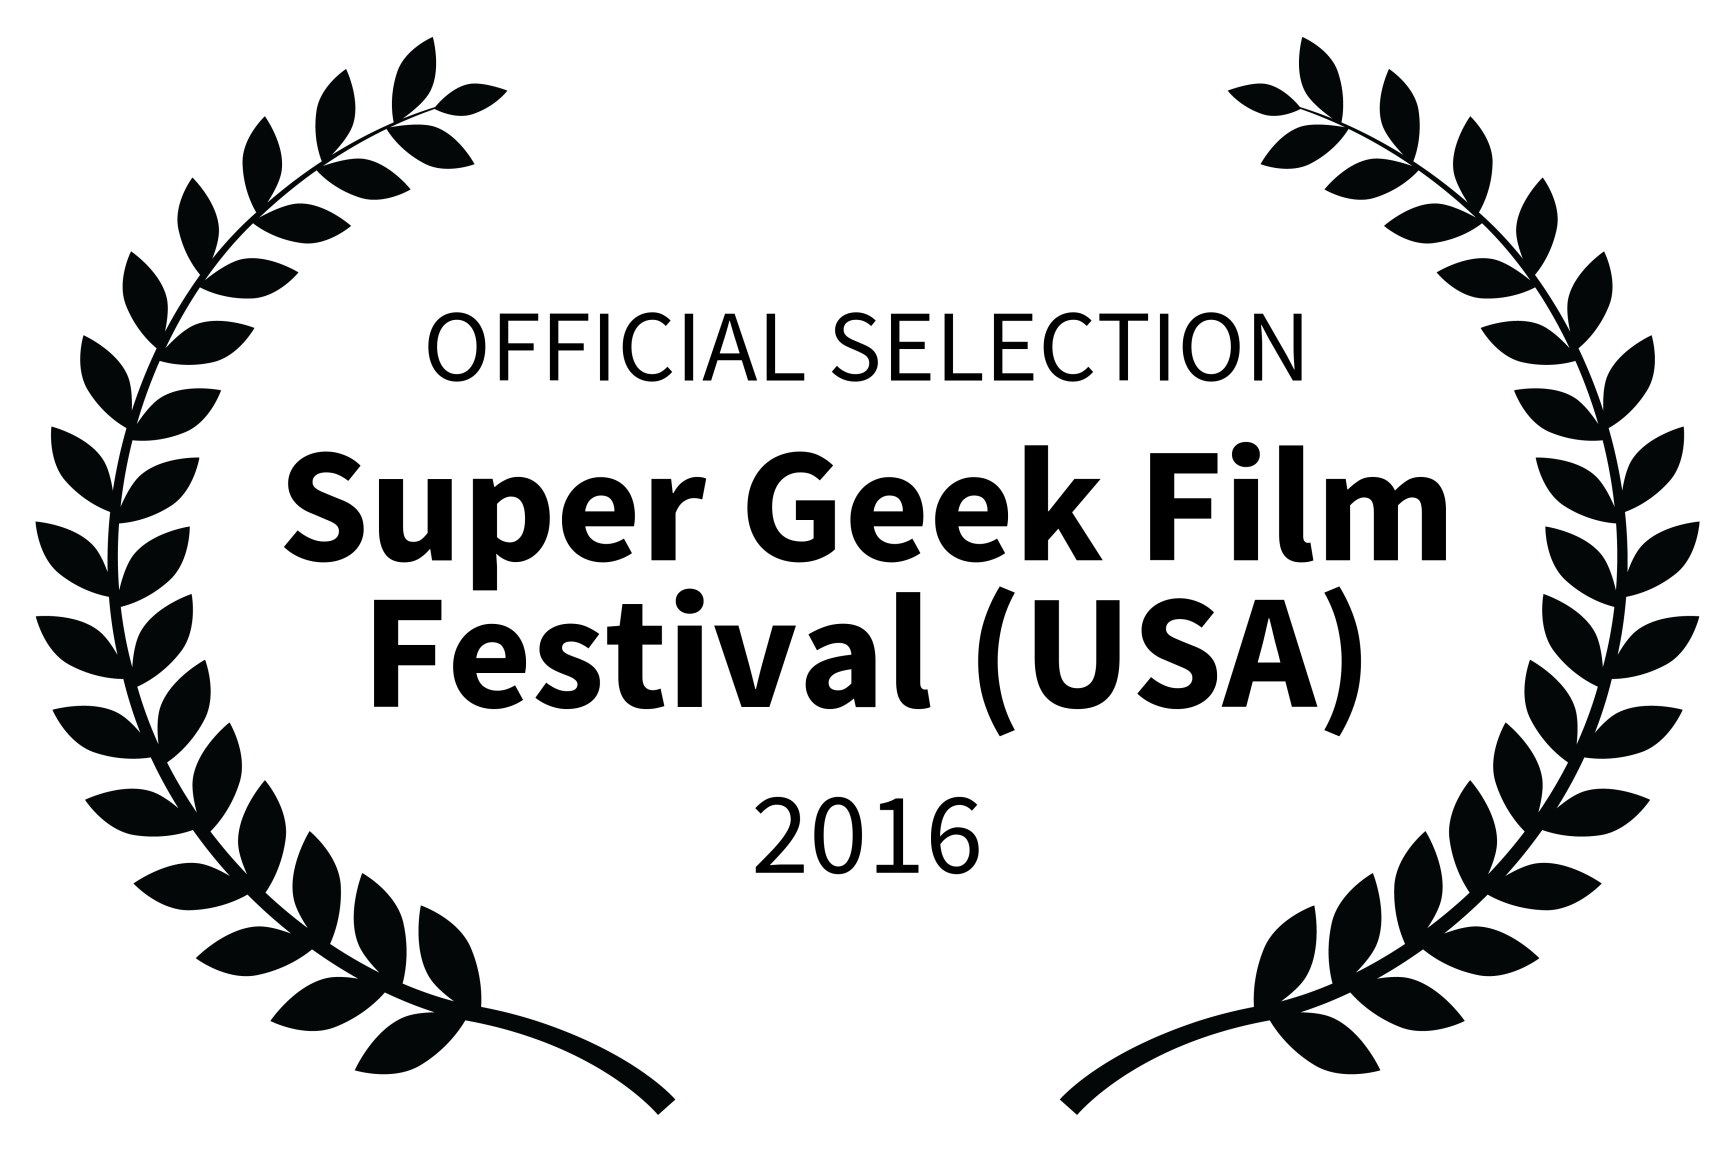 OFFICIAL SELECTION - Super Geek Film Fes